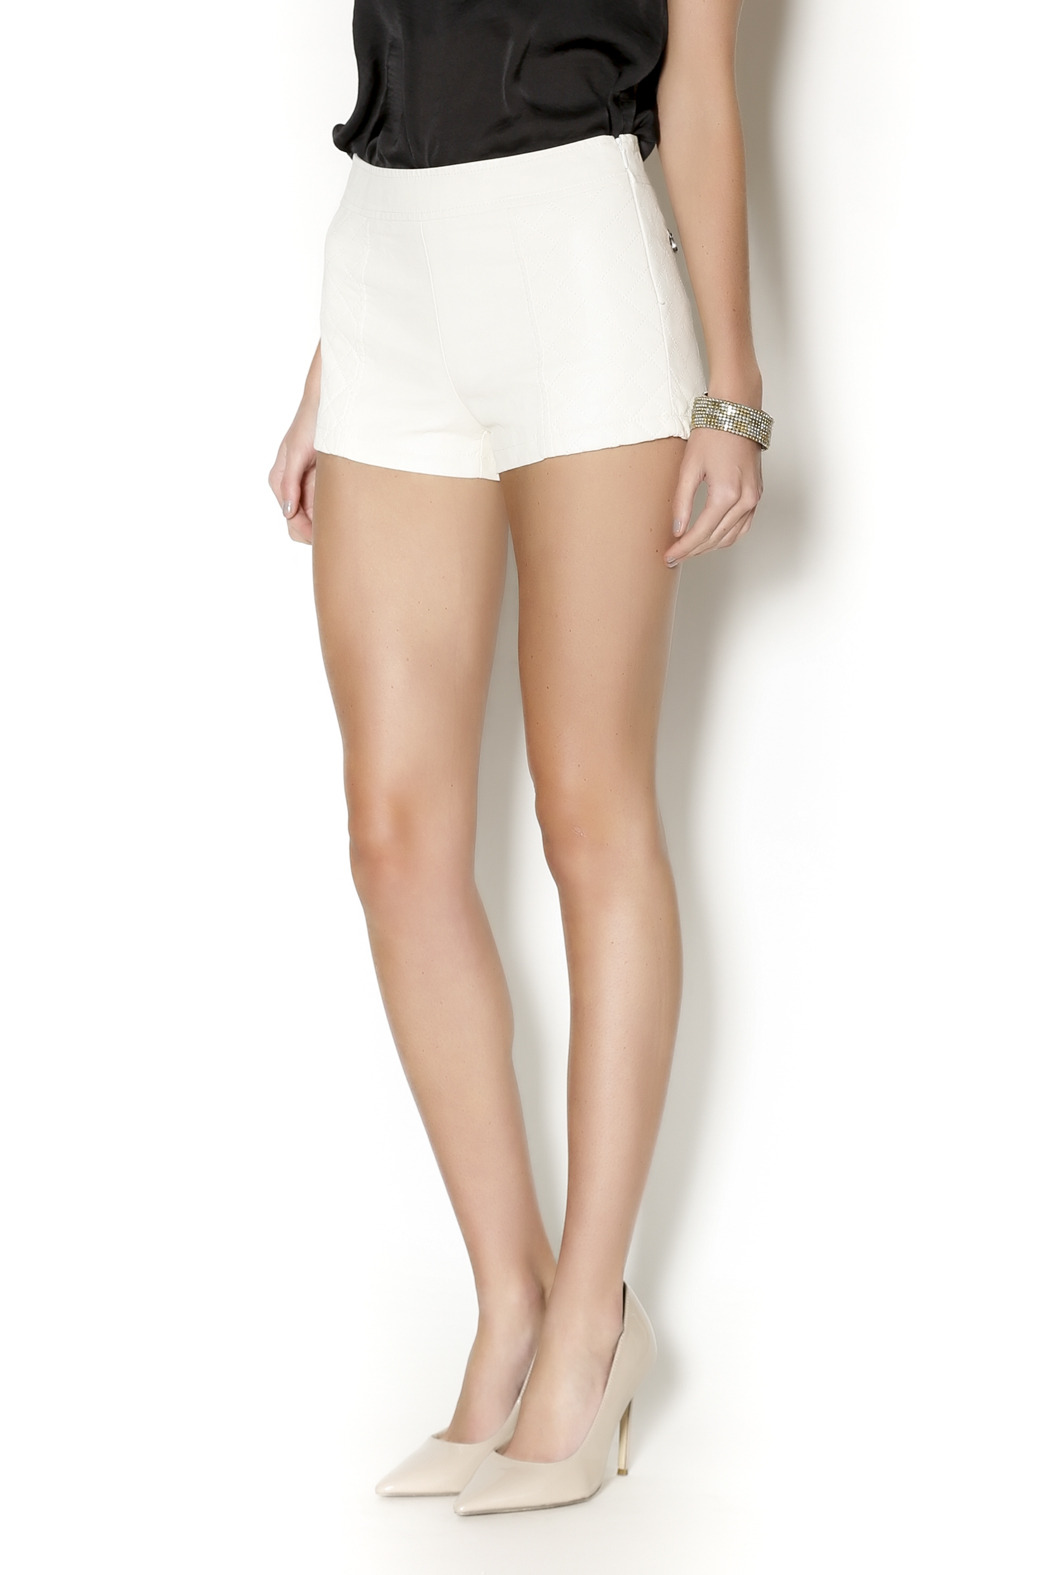 t.l.b.d. White Faux Leather Shorts from Montclair by That Little ...